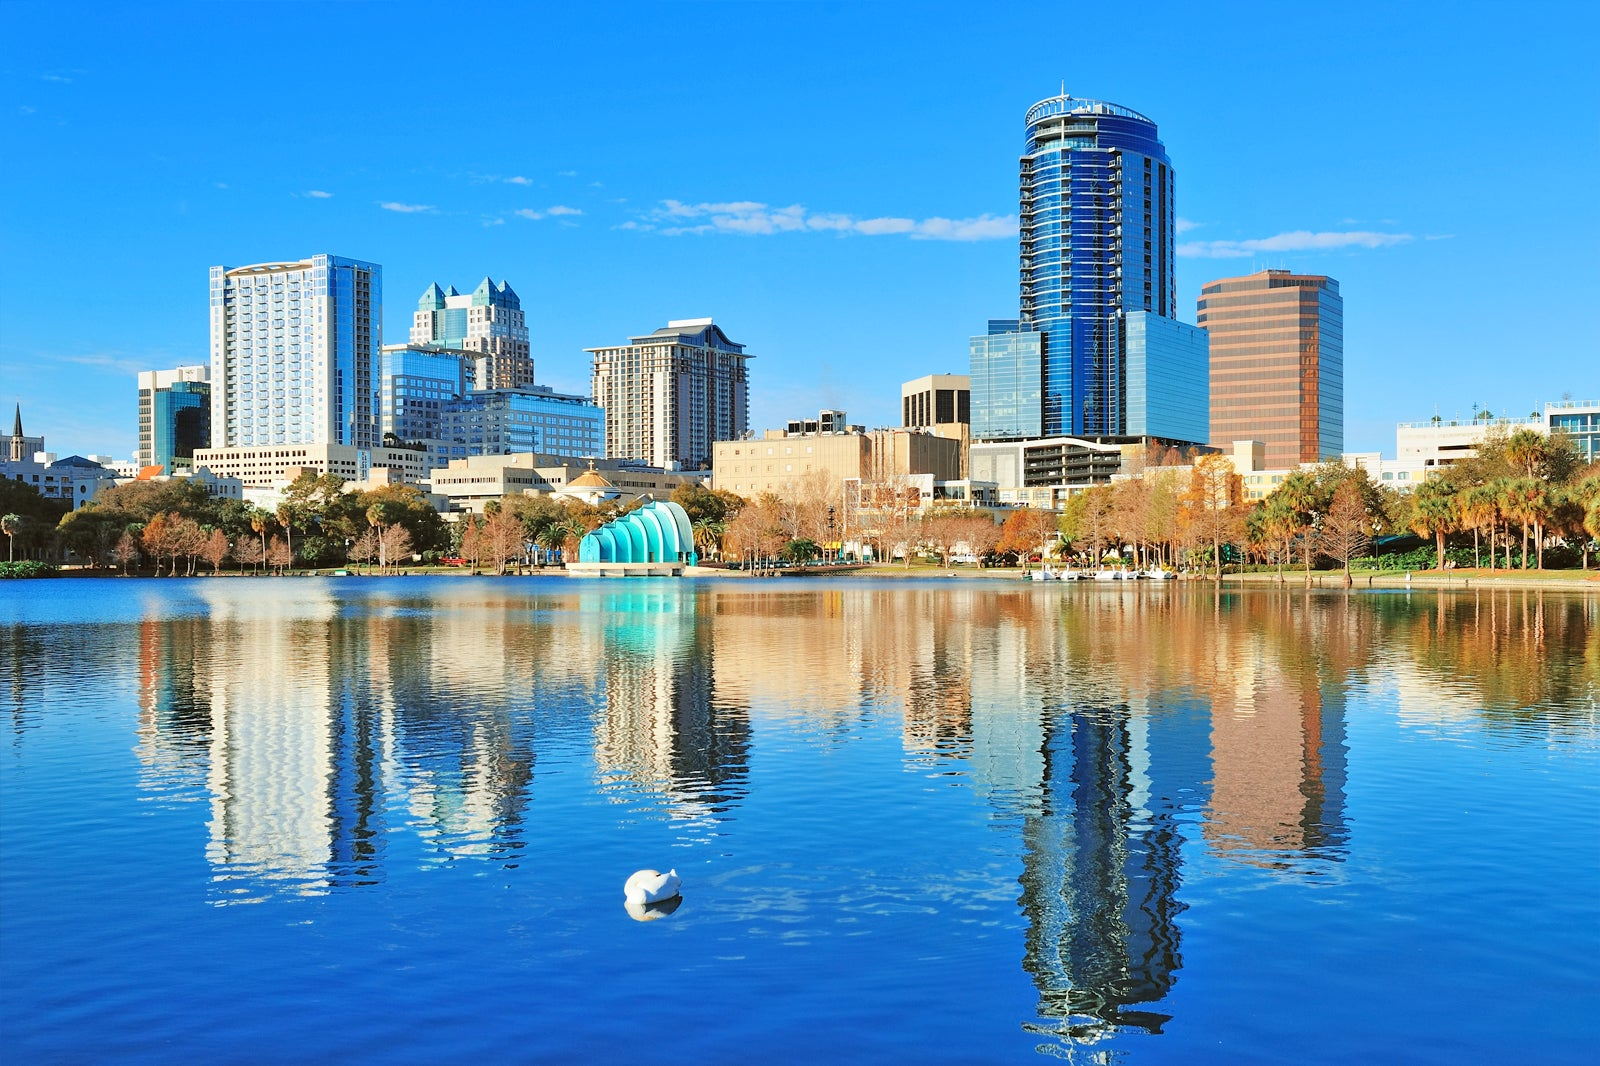 Orlando Weather - When is the Best Time to Go to Orlando? – Go Guides